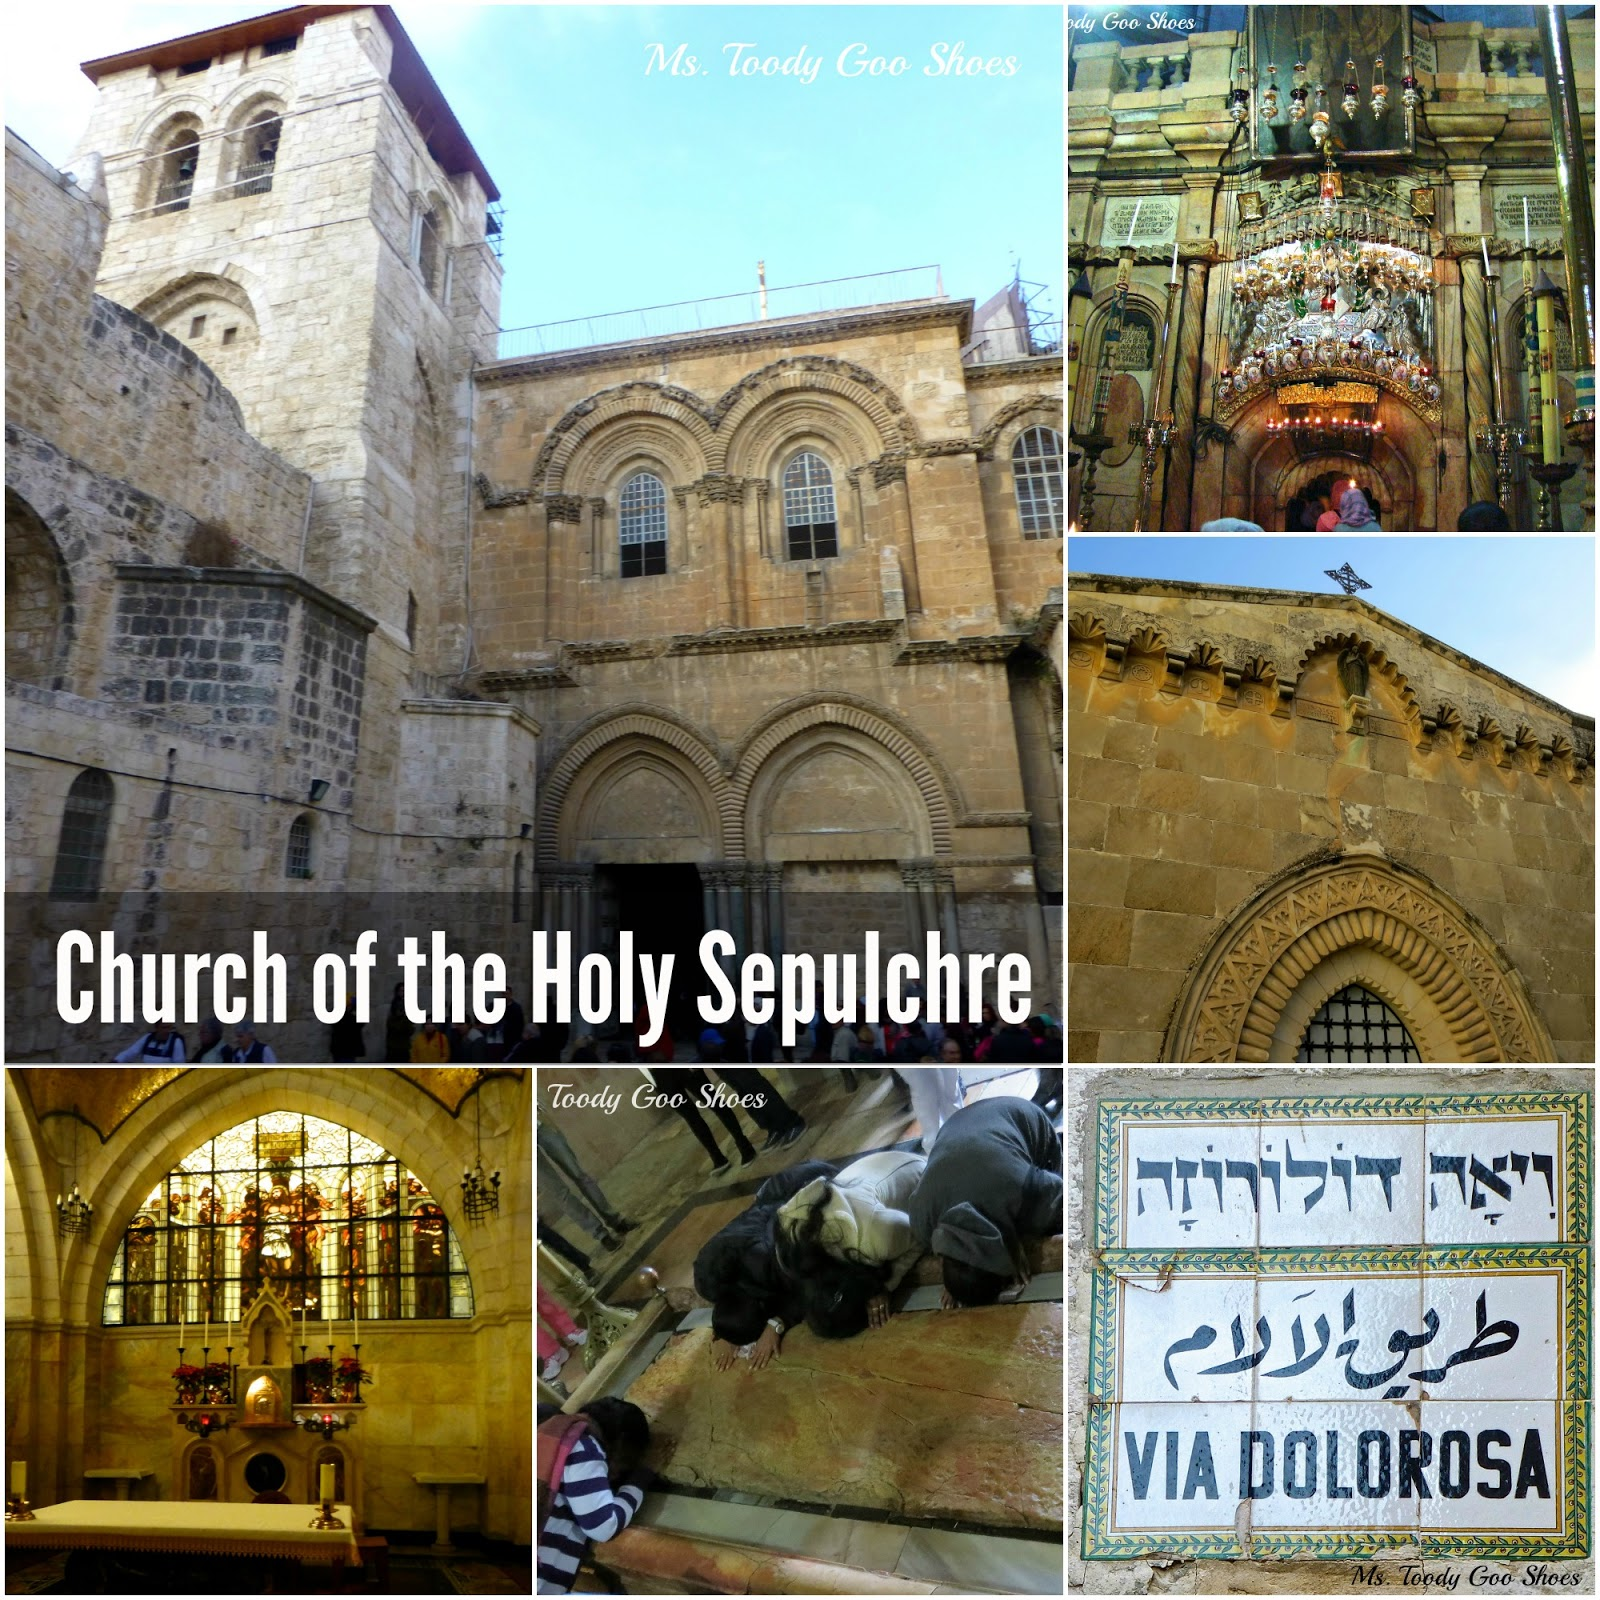 Church of the Holy Sepulchre in Jerusalem --- Ms. Toody Goo Shoes